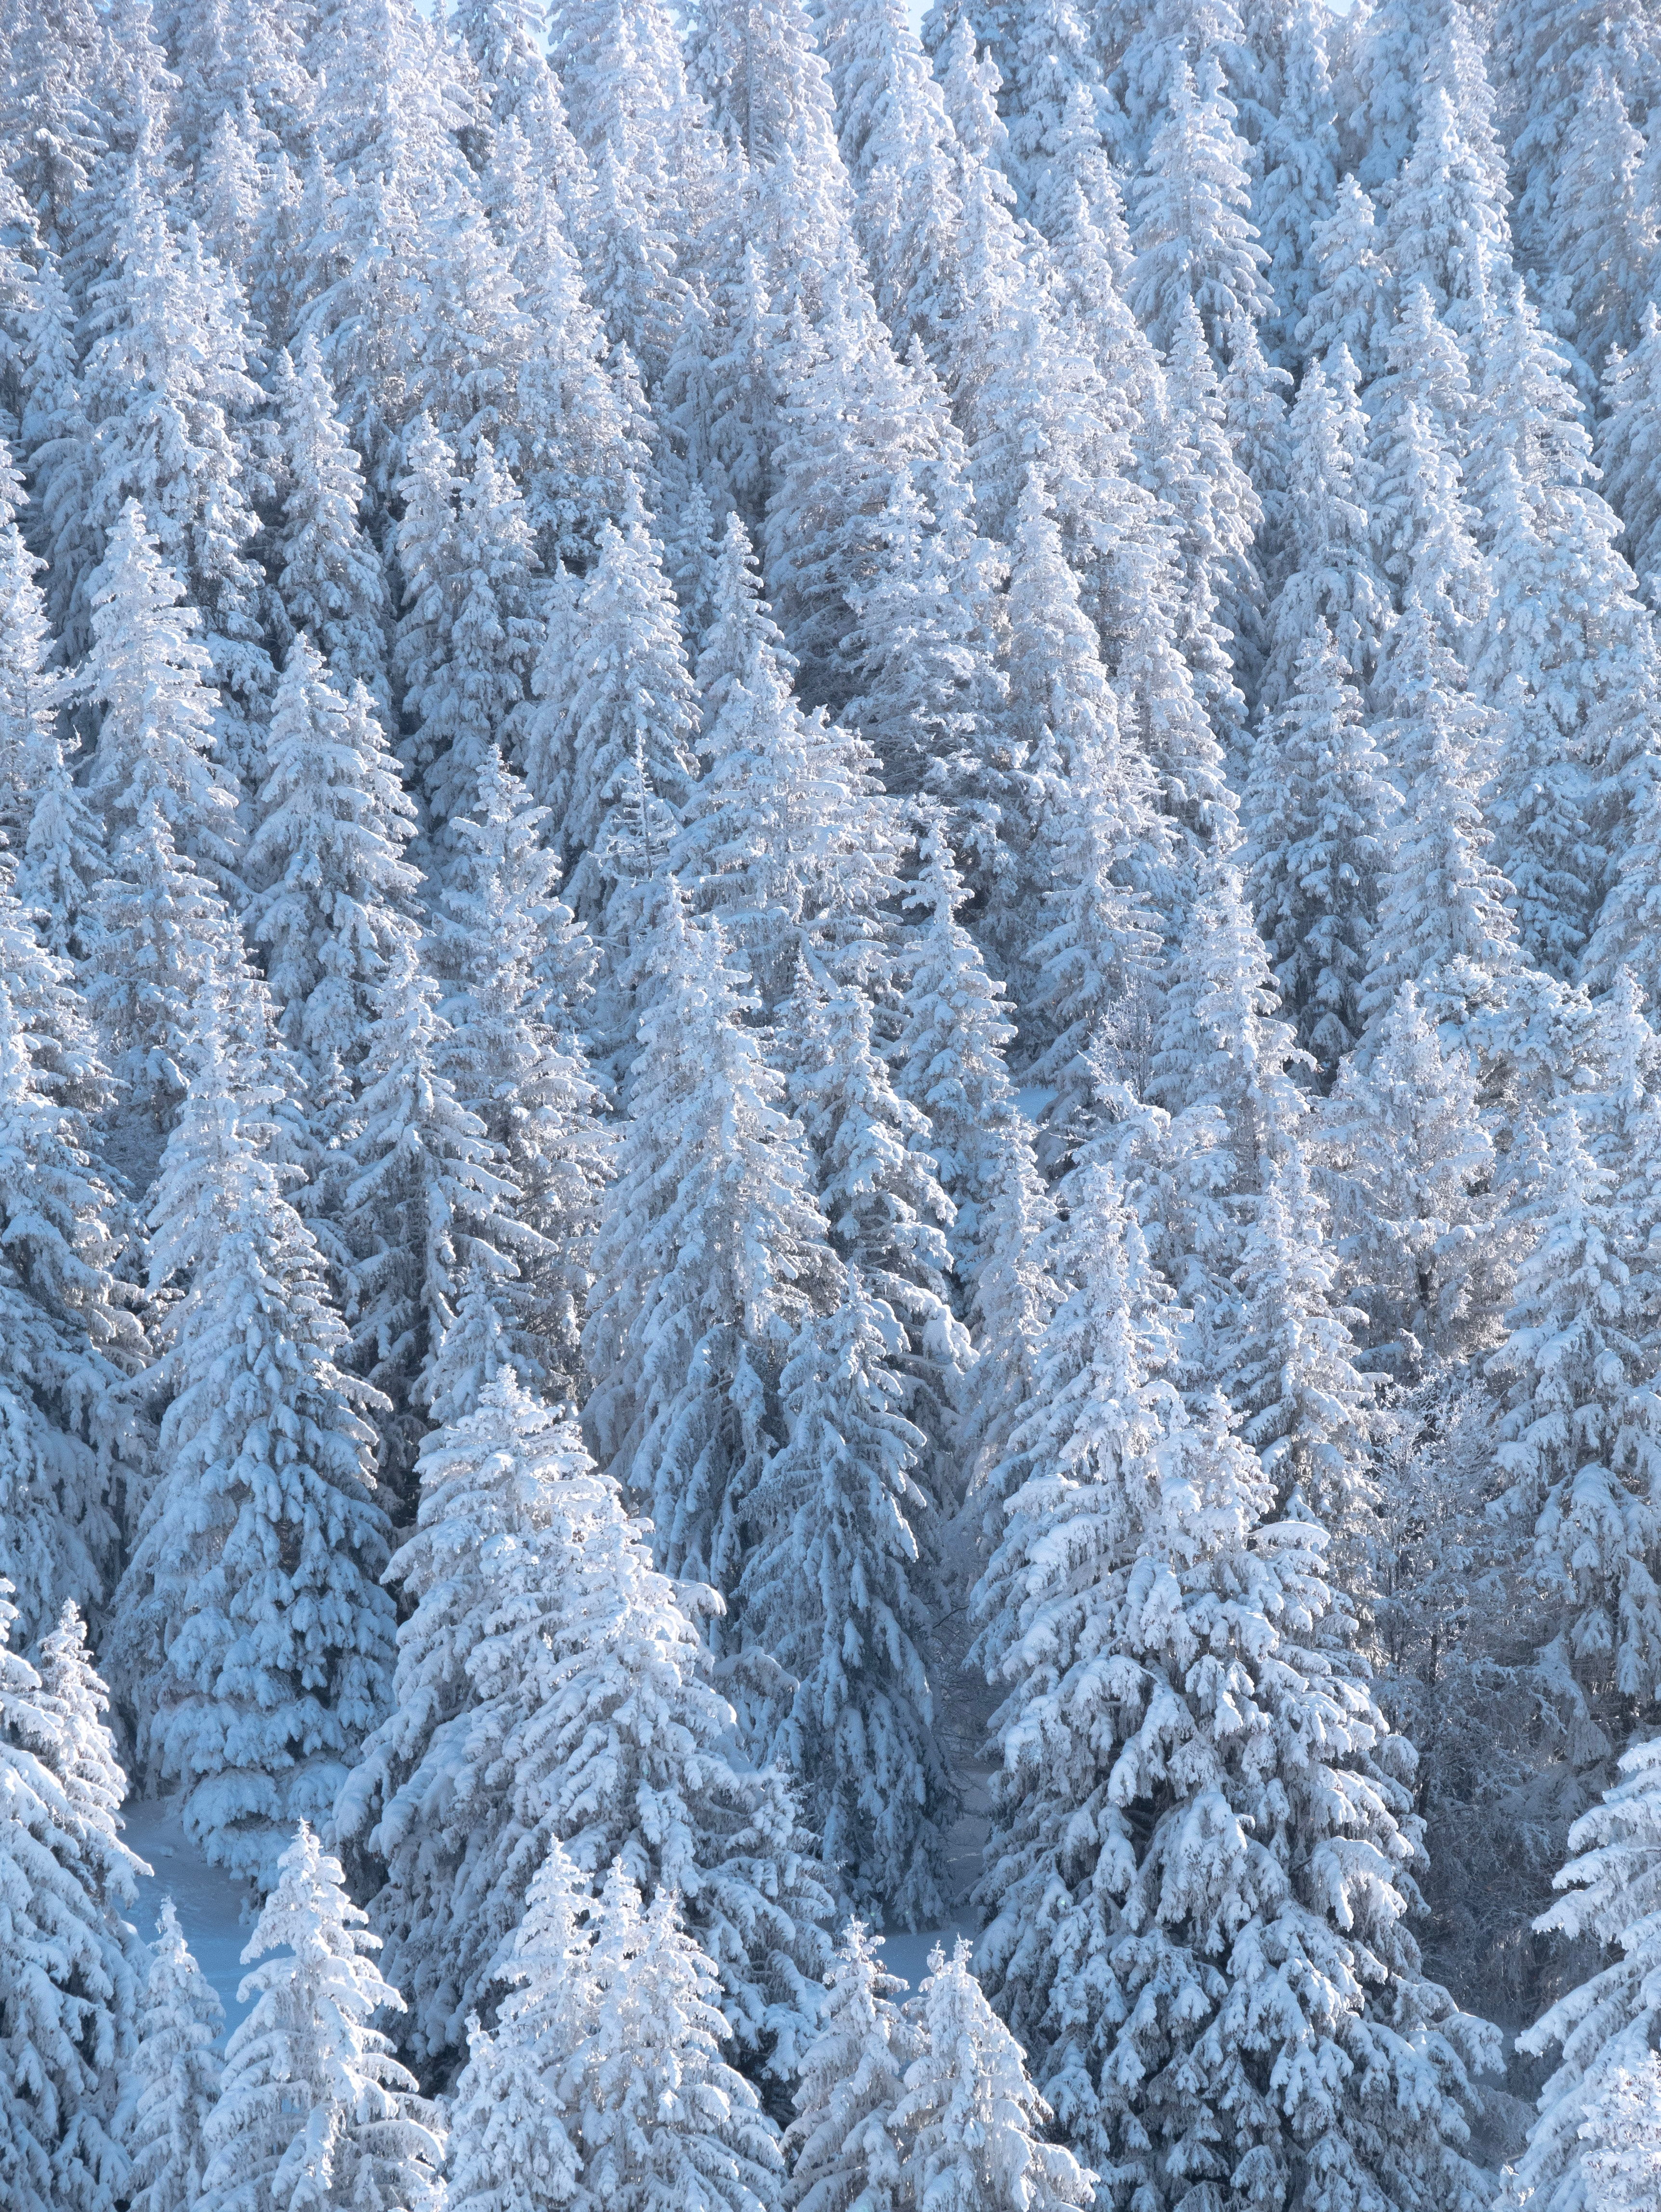 152163 download wallpaper Nature, Forest, Trees, Snow, Fir-Trees screensavers and pictures for free